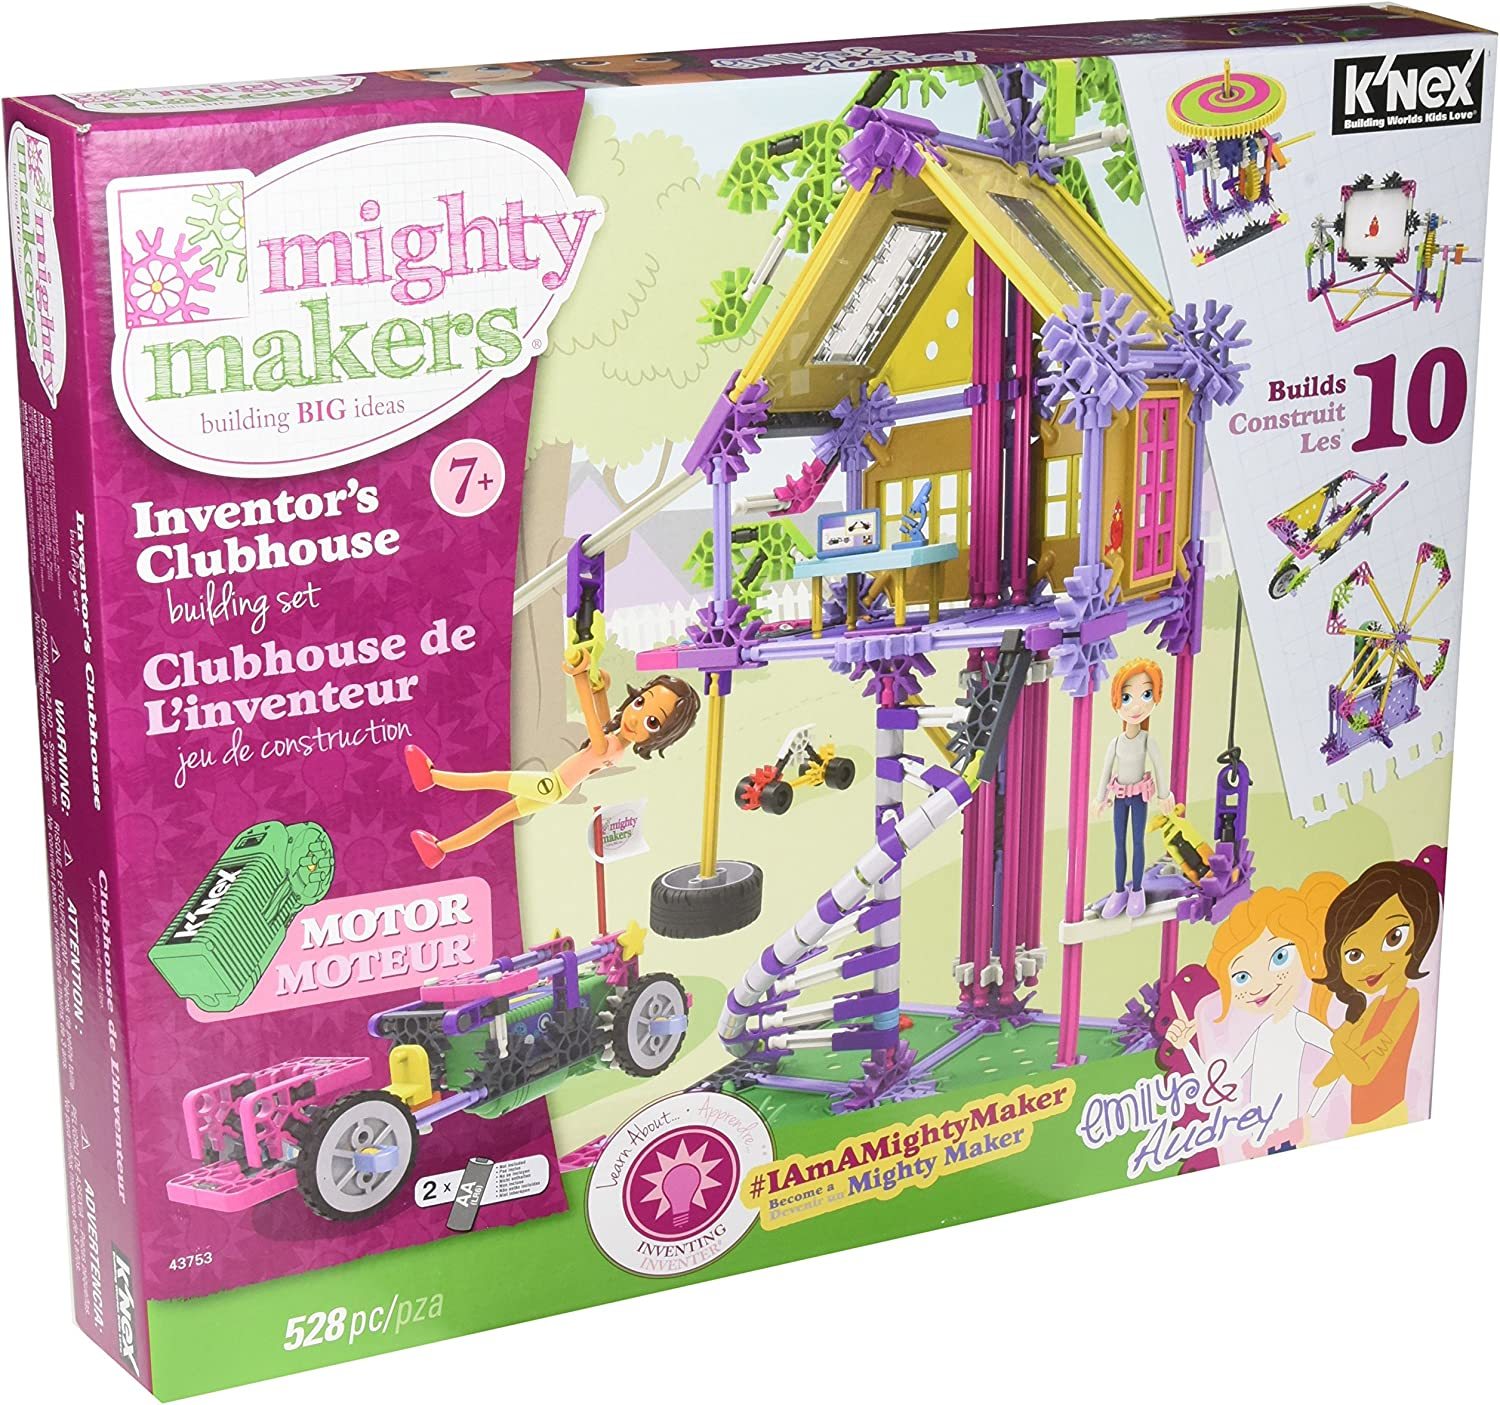 Mighty Makers 43753 Inventors Clubhouse Building Set Girl's Construction